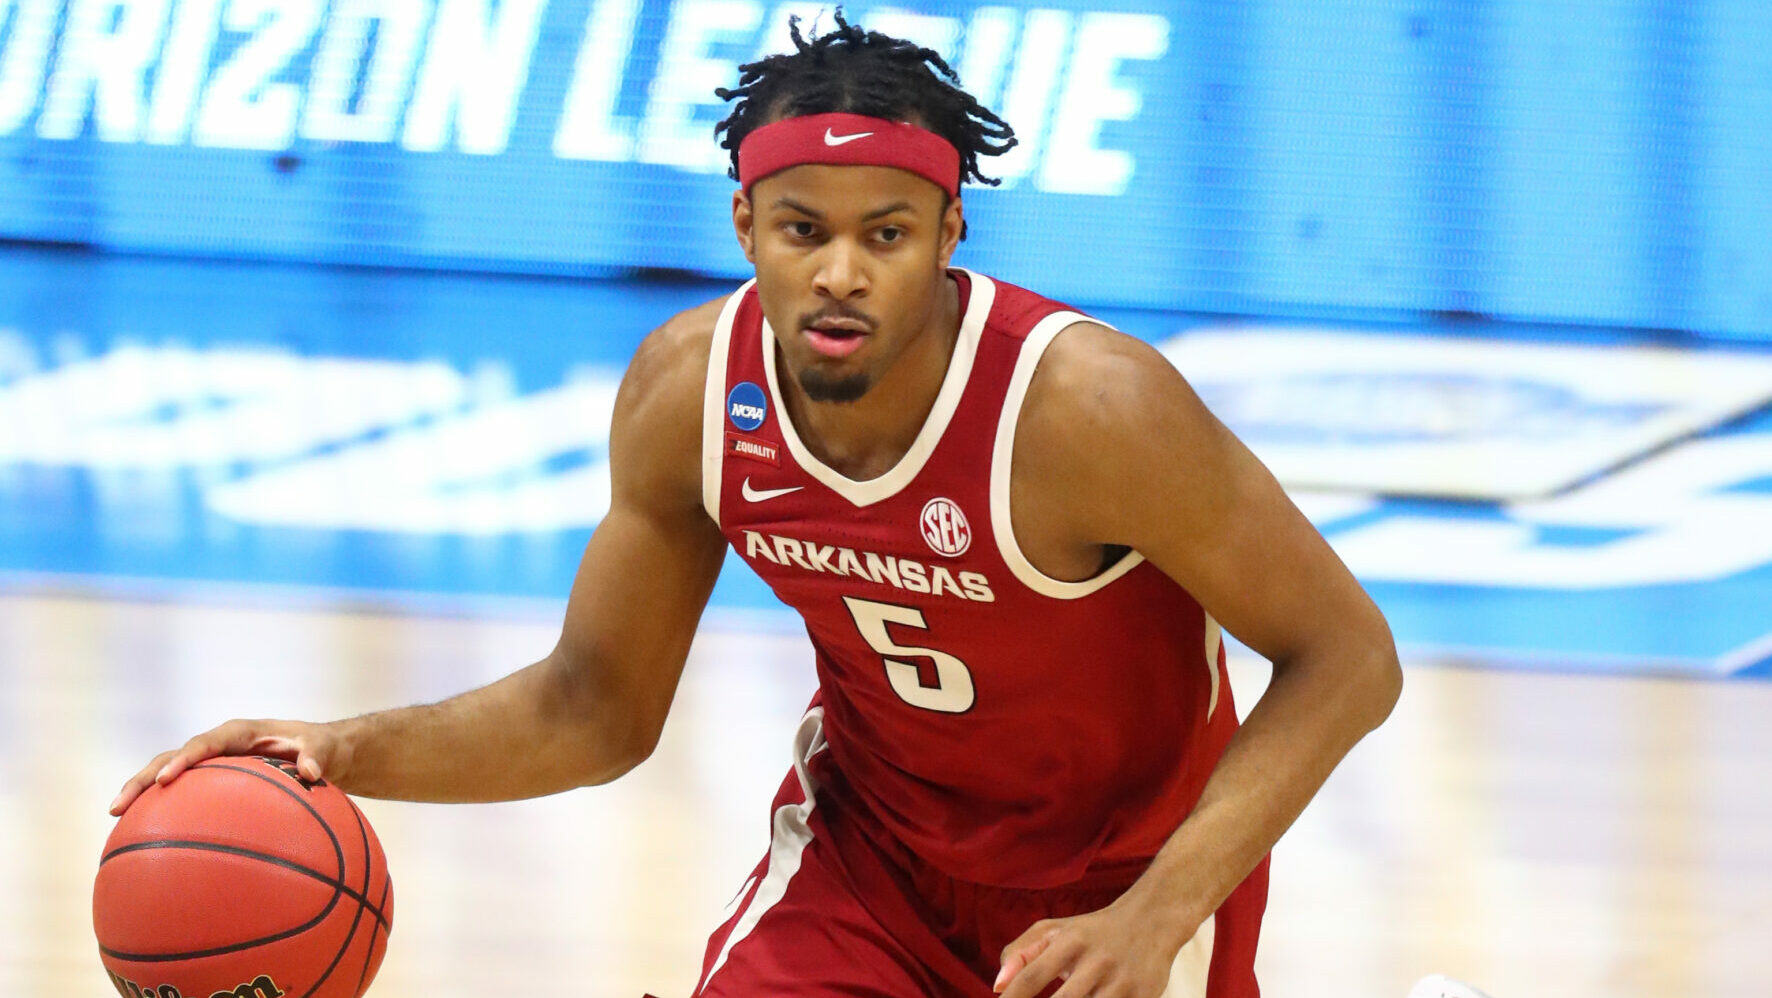 Top prospects describe their games ahead of NBA Draft 2021